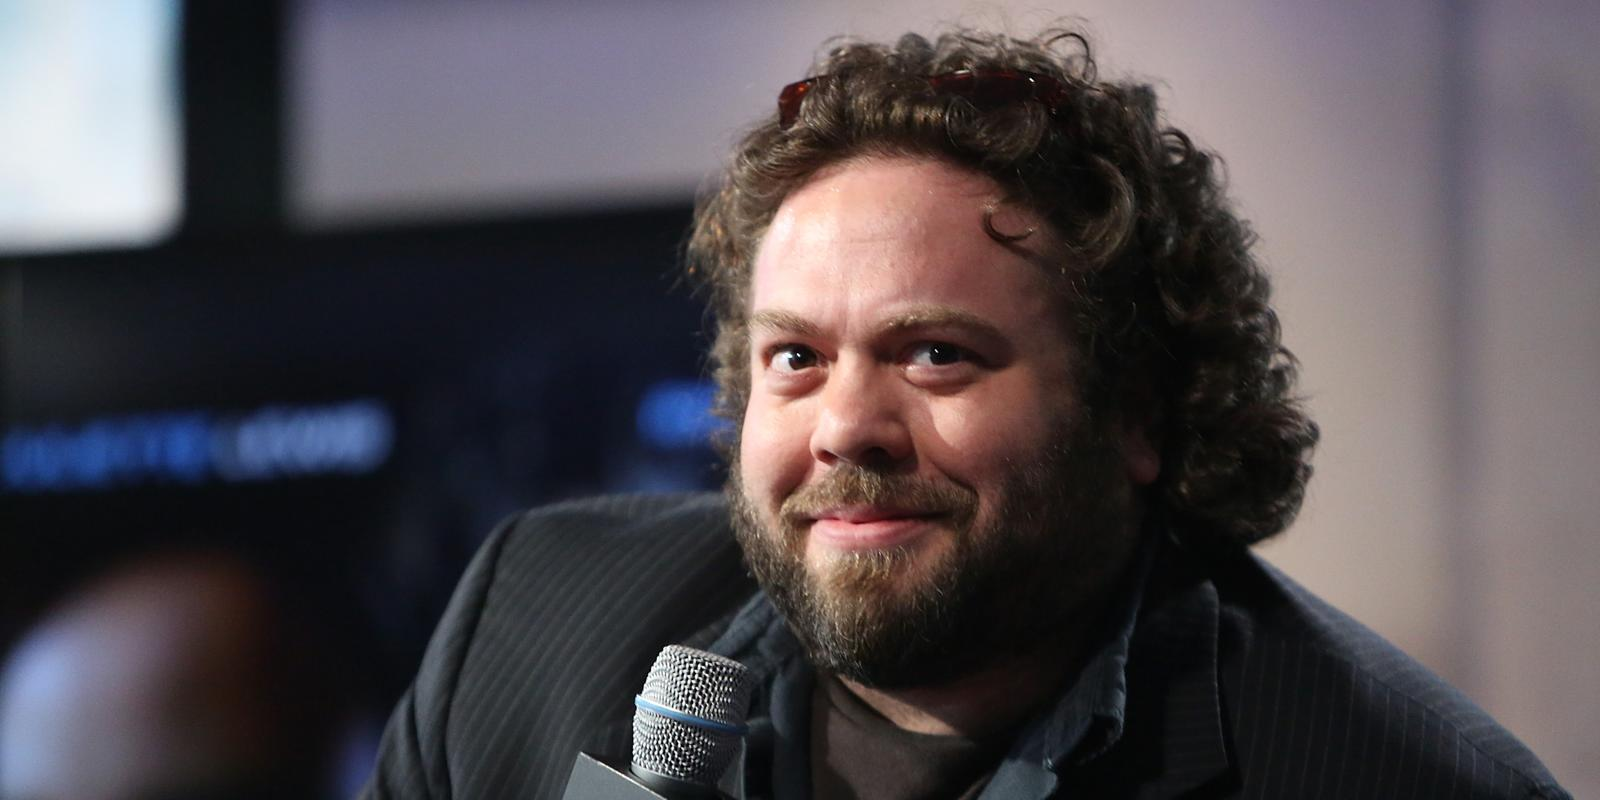 dan foglerdan fogler wife, dan fogler height, dan fogler fantastic beasts, dan fogler music, dan fogler instagram, dan fogler wiki, dan fogler singing, dan fogler filmography, dan fogler imdb, dan fogler jodie capes, dan fogler music video, dan fogler type o negative, dan fogler interview, dan fogler, dan fogler twitter, dan fogler net worth, dan fogler movies, dan folger wiz khalifa, dan fogler sam kinison, dan fogler secrets and lies